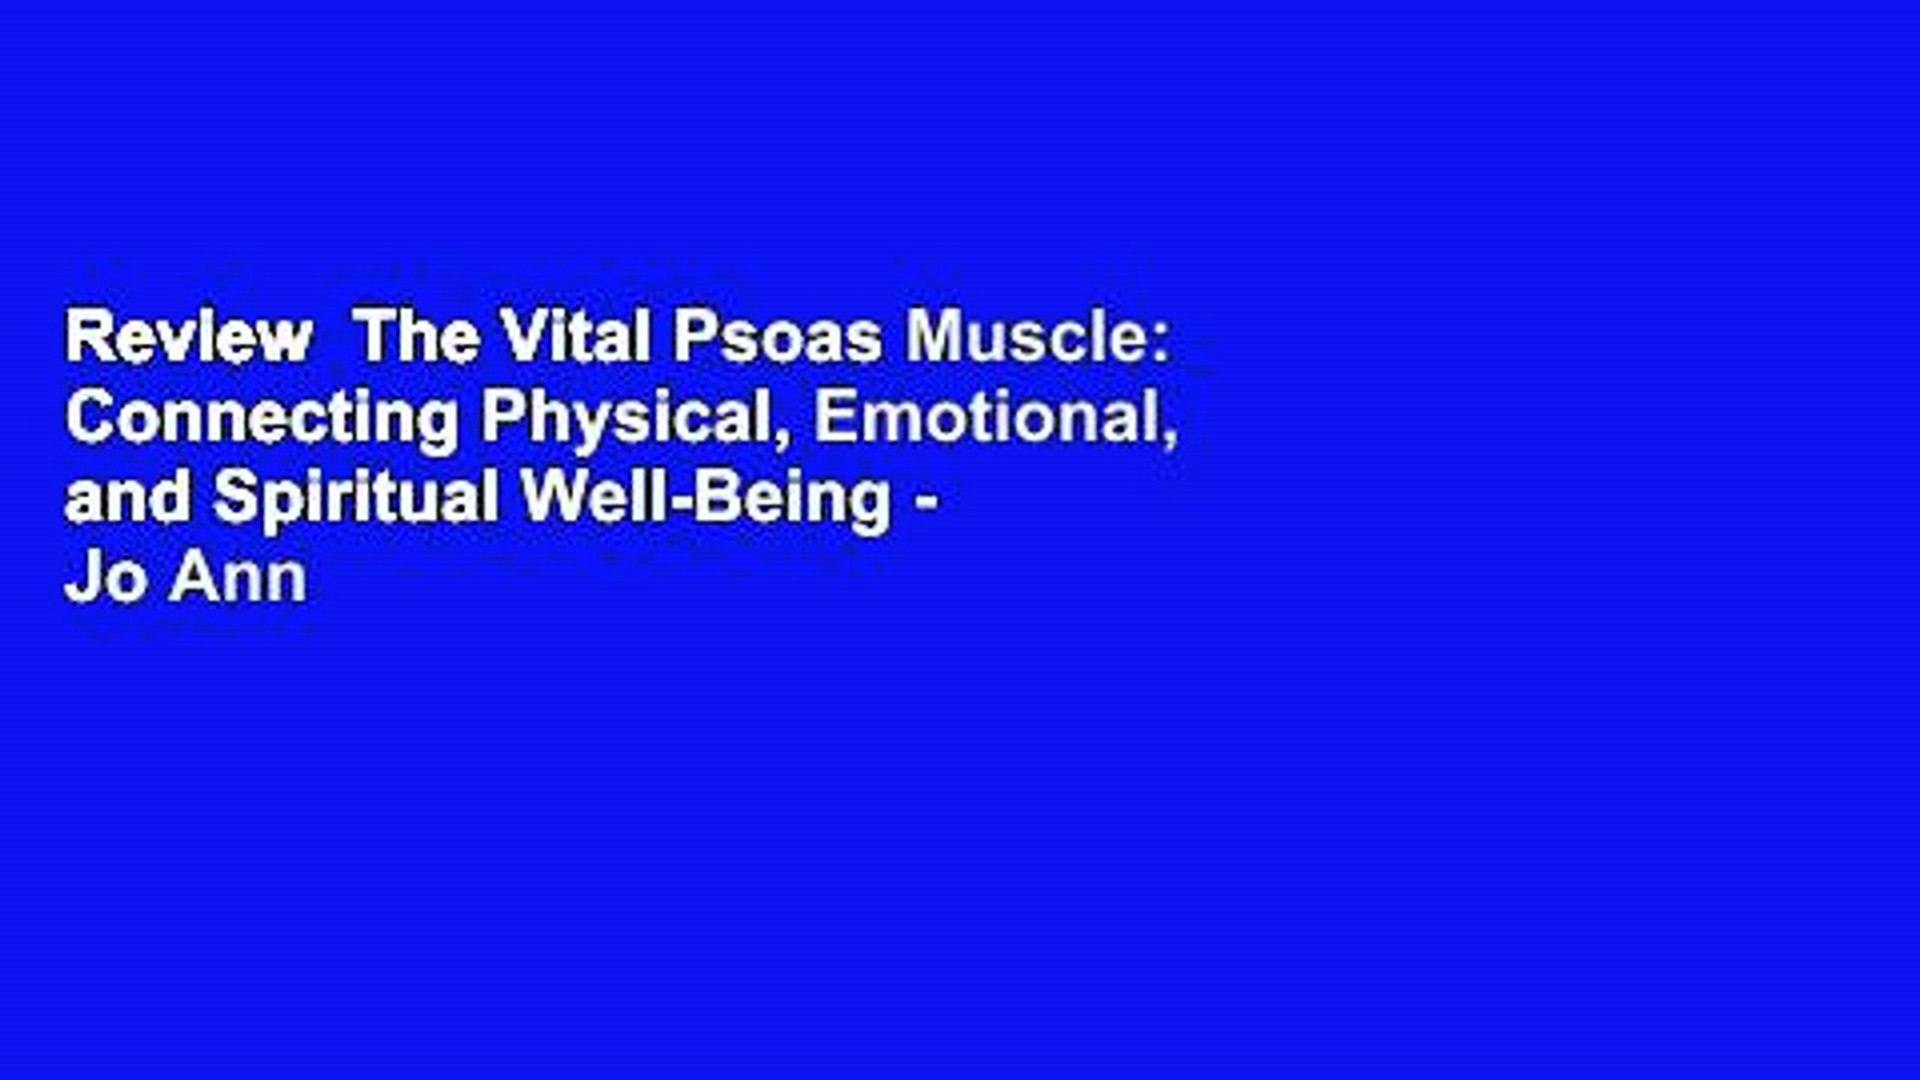 Review  The Vital Psoas Muscle: Connecting Physical, Emotional, and Spiritual Well-Being - Jo Ann